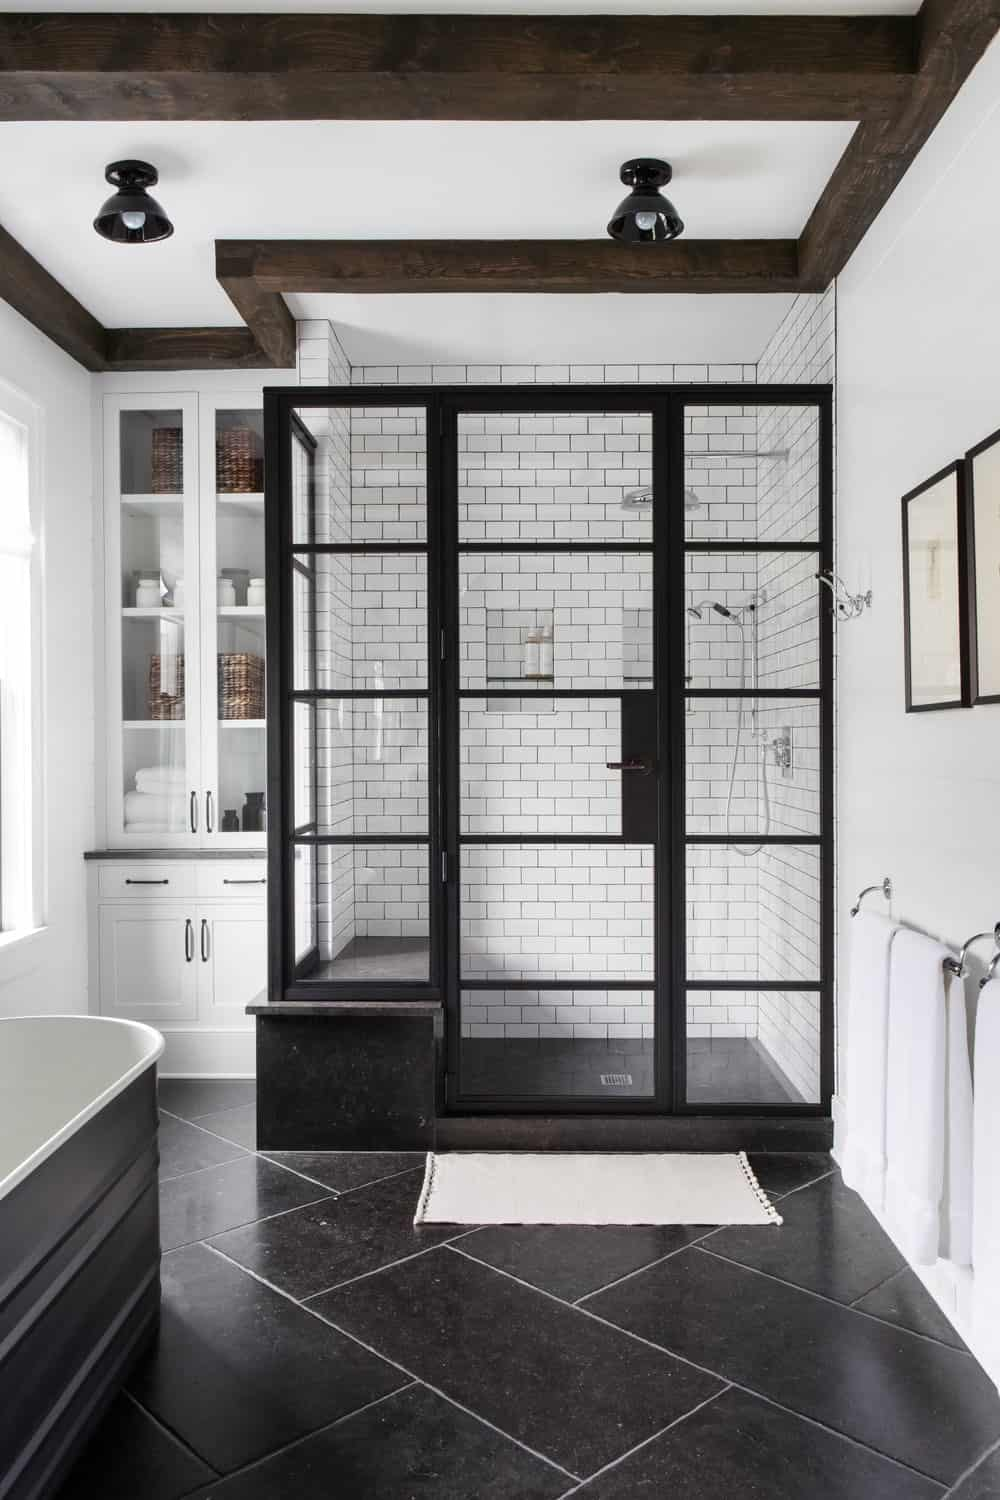 This charming bathroom has a glass-enclosed shower area that has black frames matching the black flooring tiles that contrast the white walls and white ceiling. This is adorned with a wooden beams and a pair of black semi-flush mount lights.